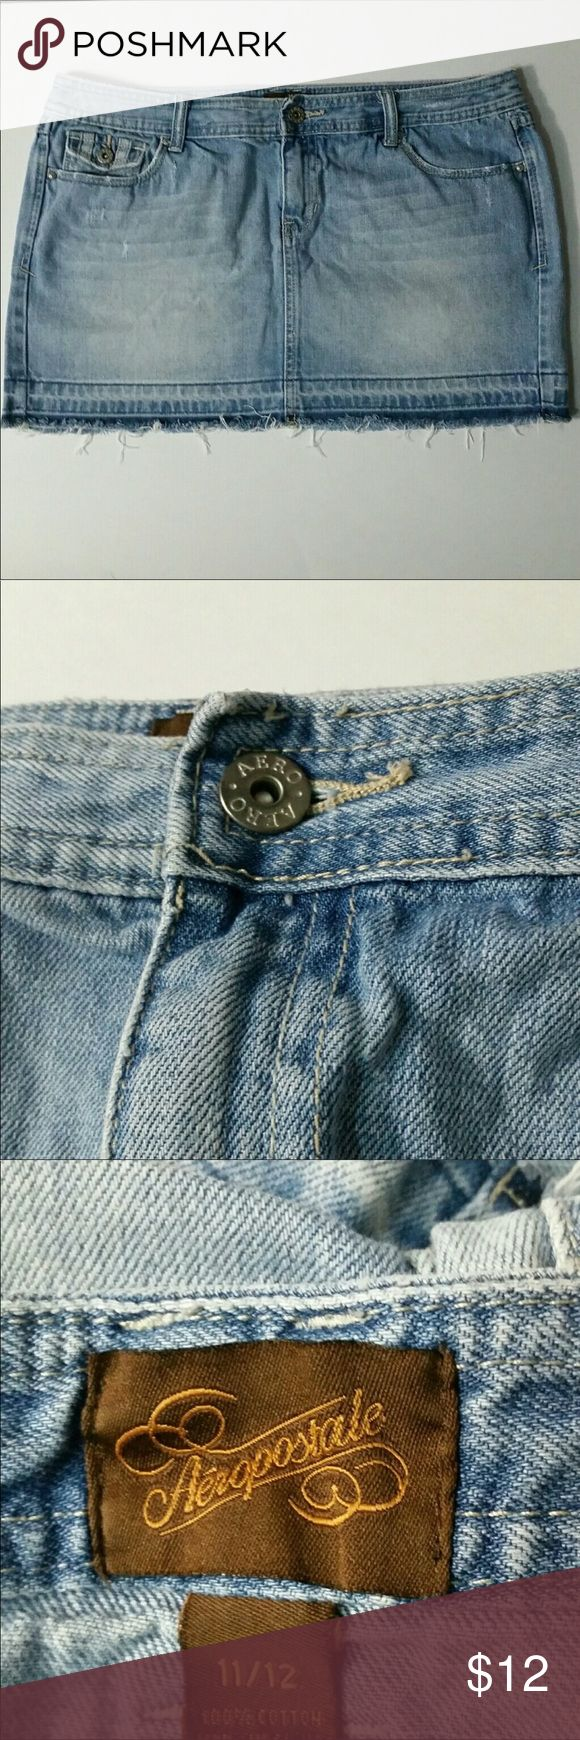 Denim skirt 18 inches across,  13 1/2 inches from top to bottom, 100% cotton skirt Aeropostale Skirts Mini